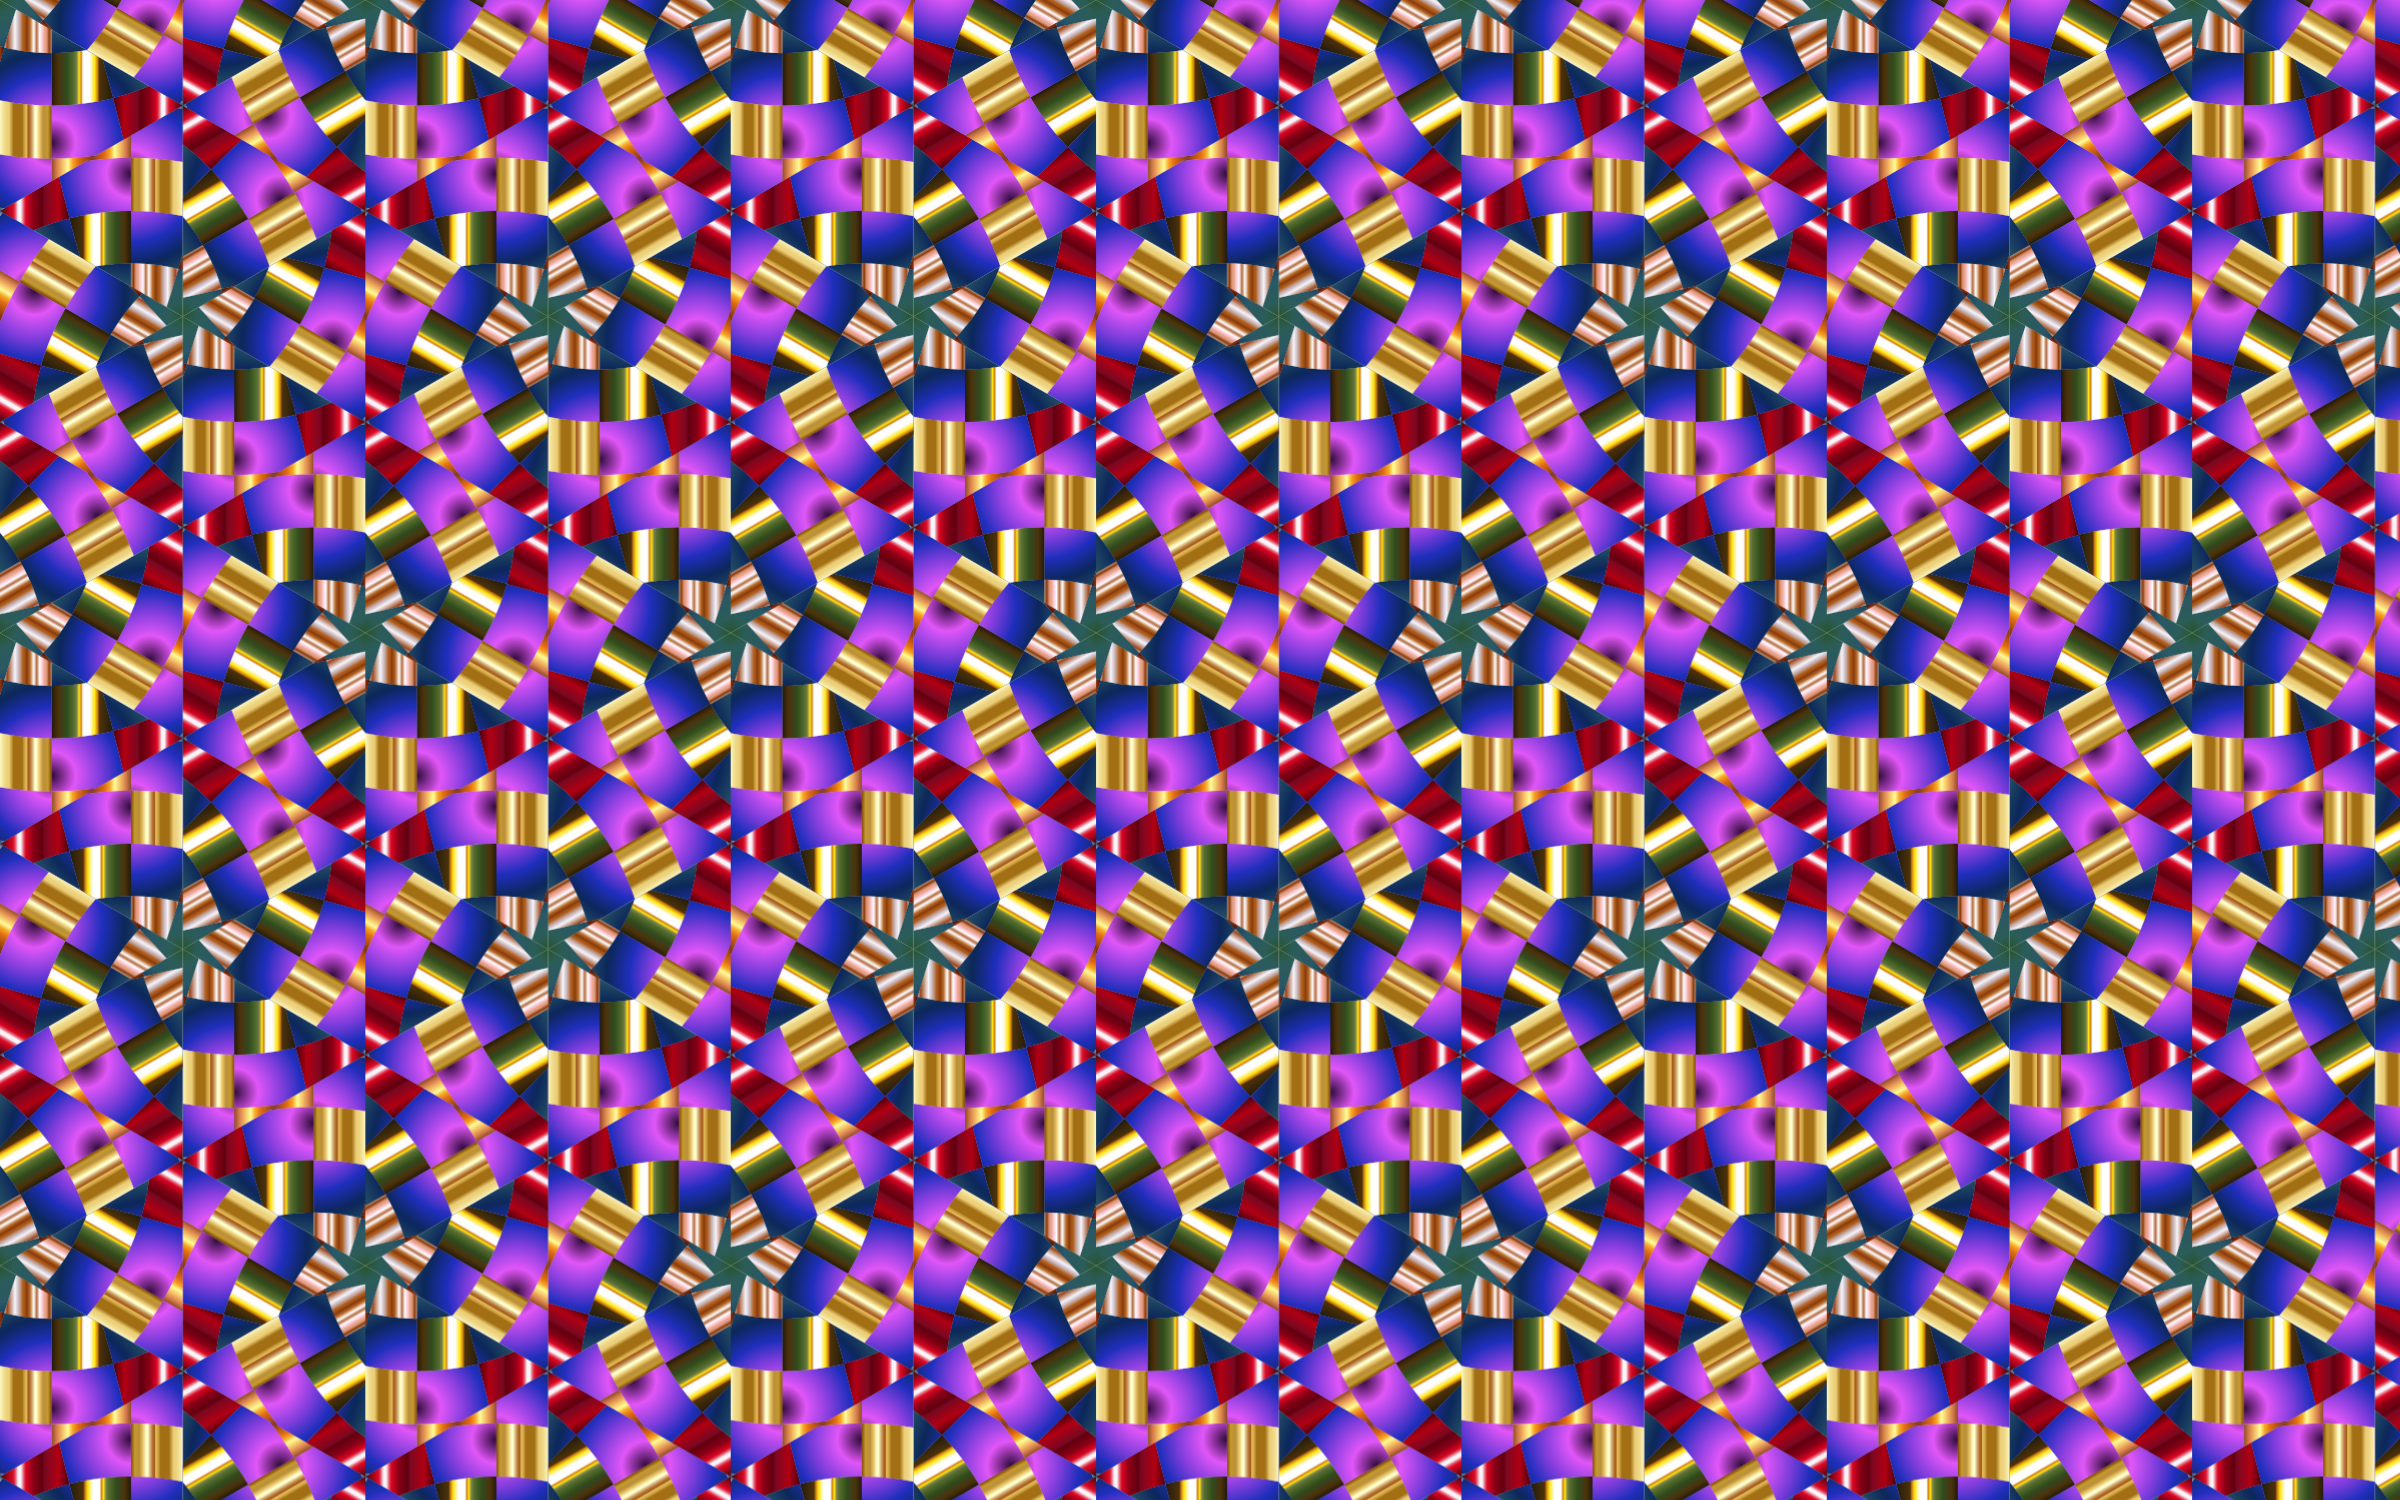 Seamless Pattern 87 by GDJ